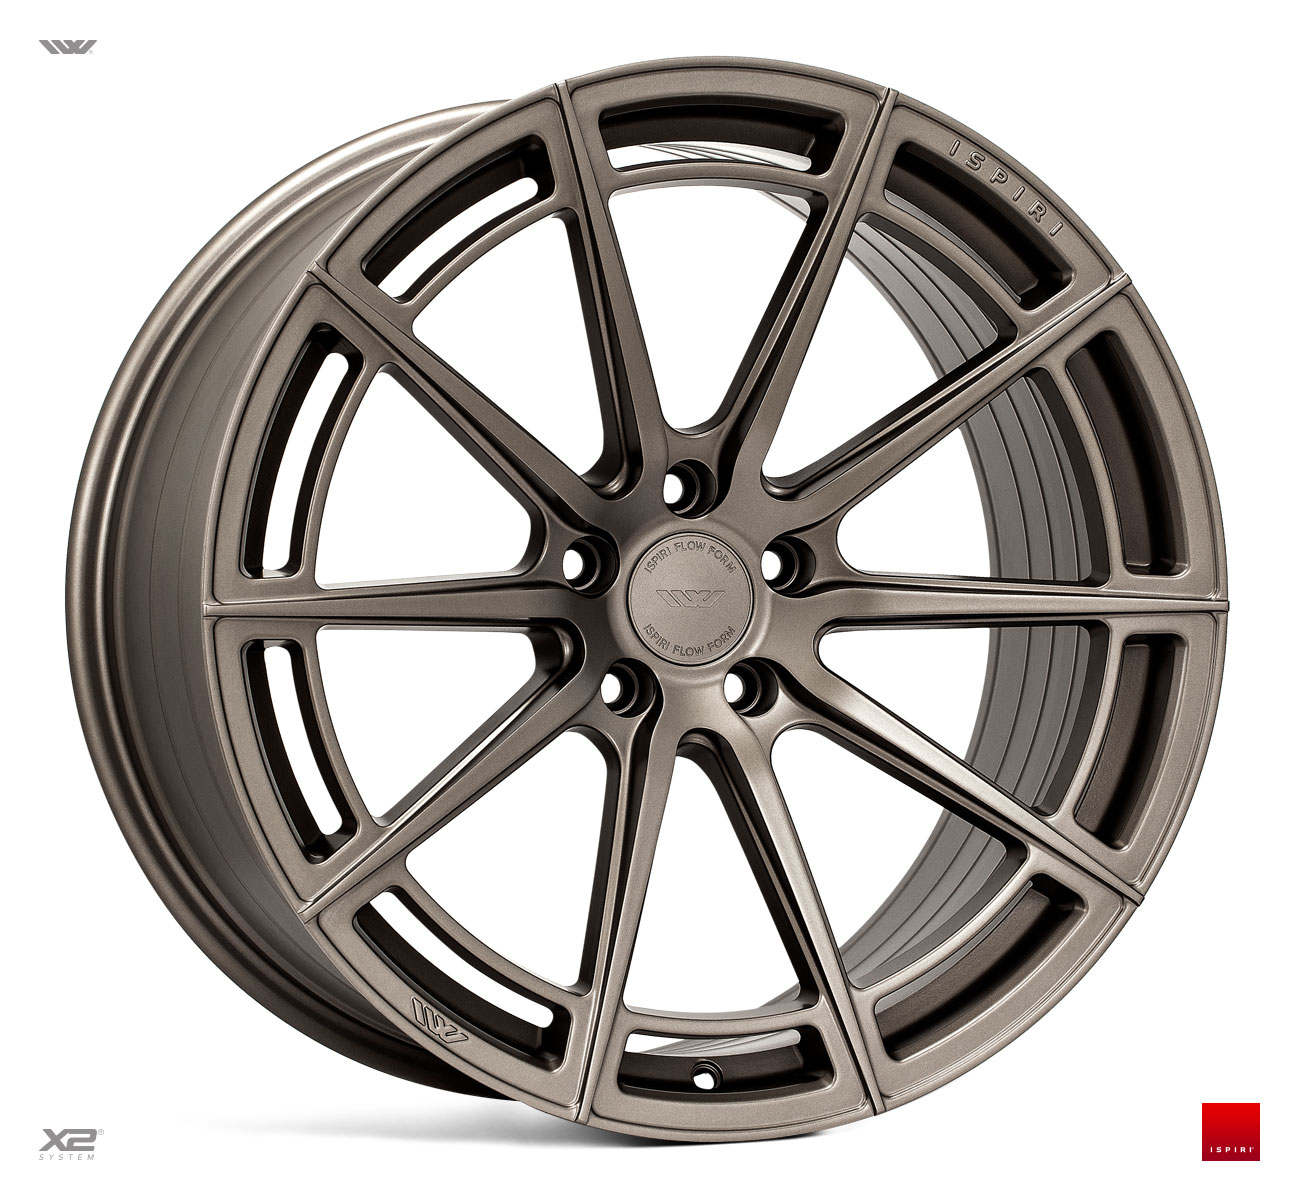 "NEW 20"" ISPIRI FFR2 MULTI-SPOKE ALLOY WHEELS IN MATT CARBON BRONZE , WIDER 10"" OR 10.5"" REAR"